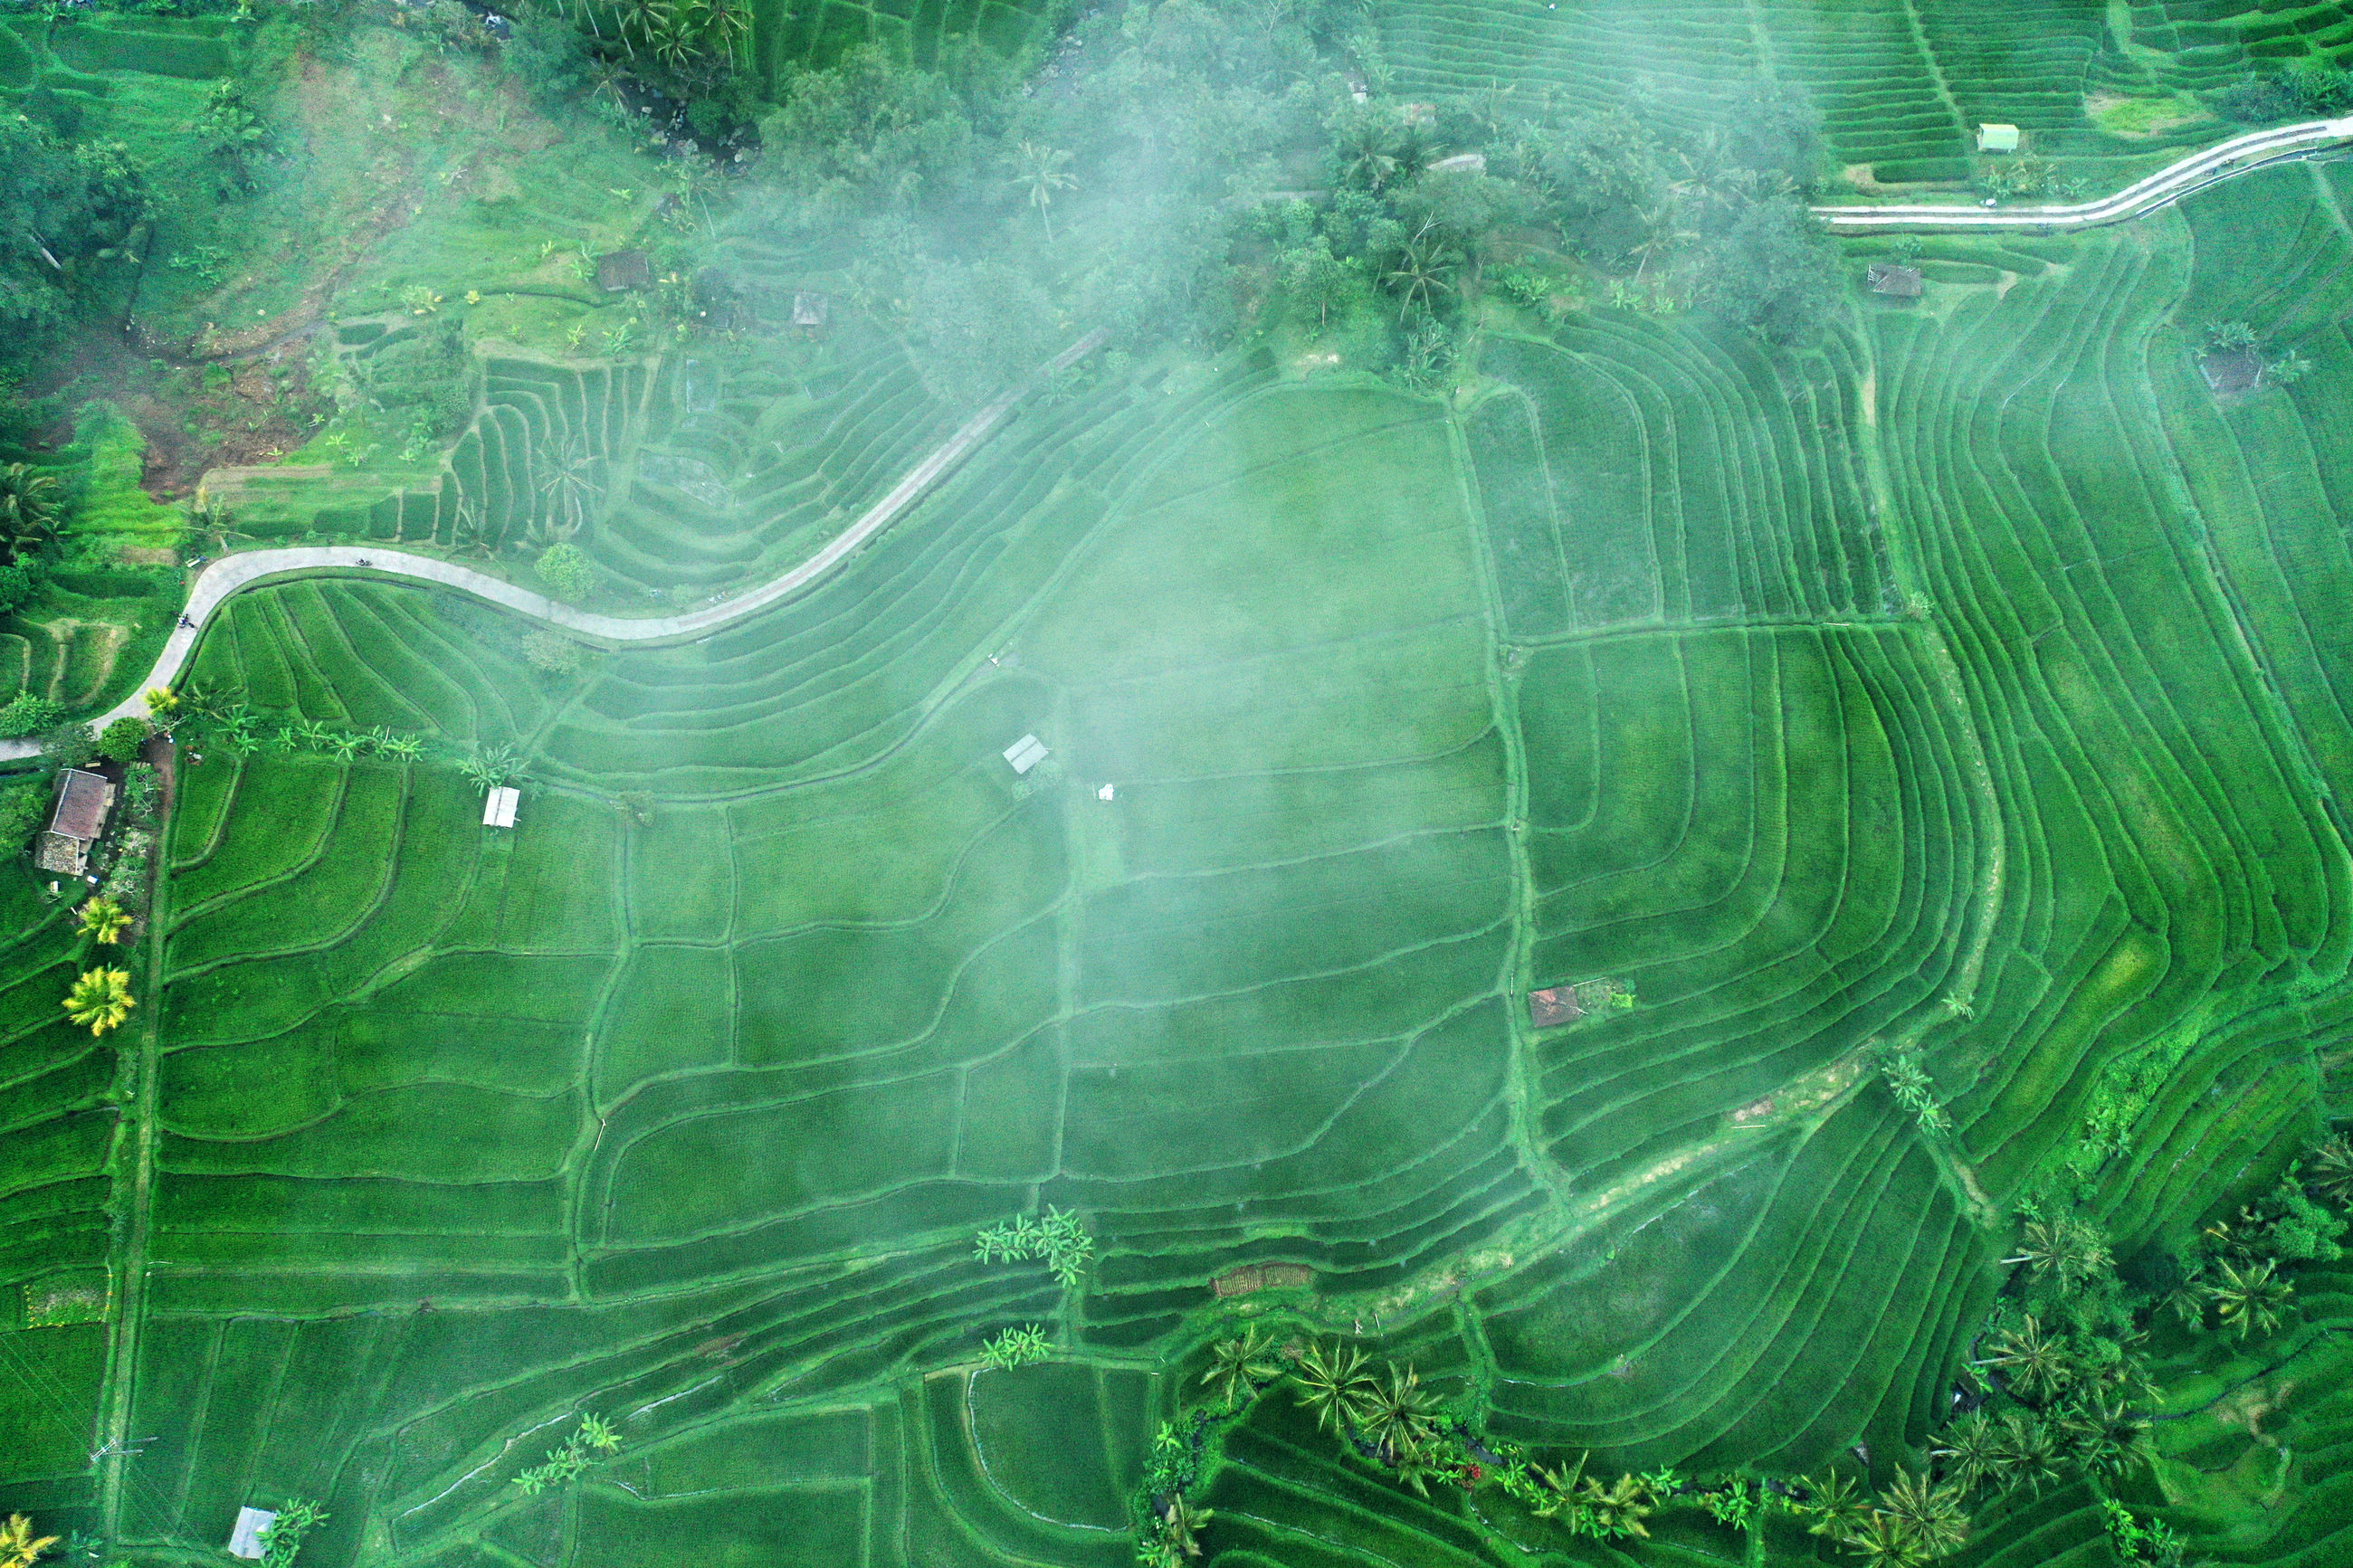 Aerial view of agricultural landscape in foggy weather